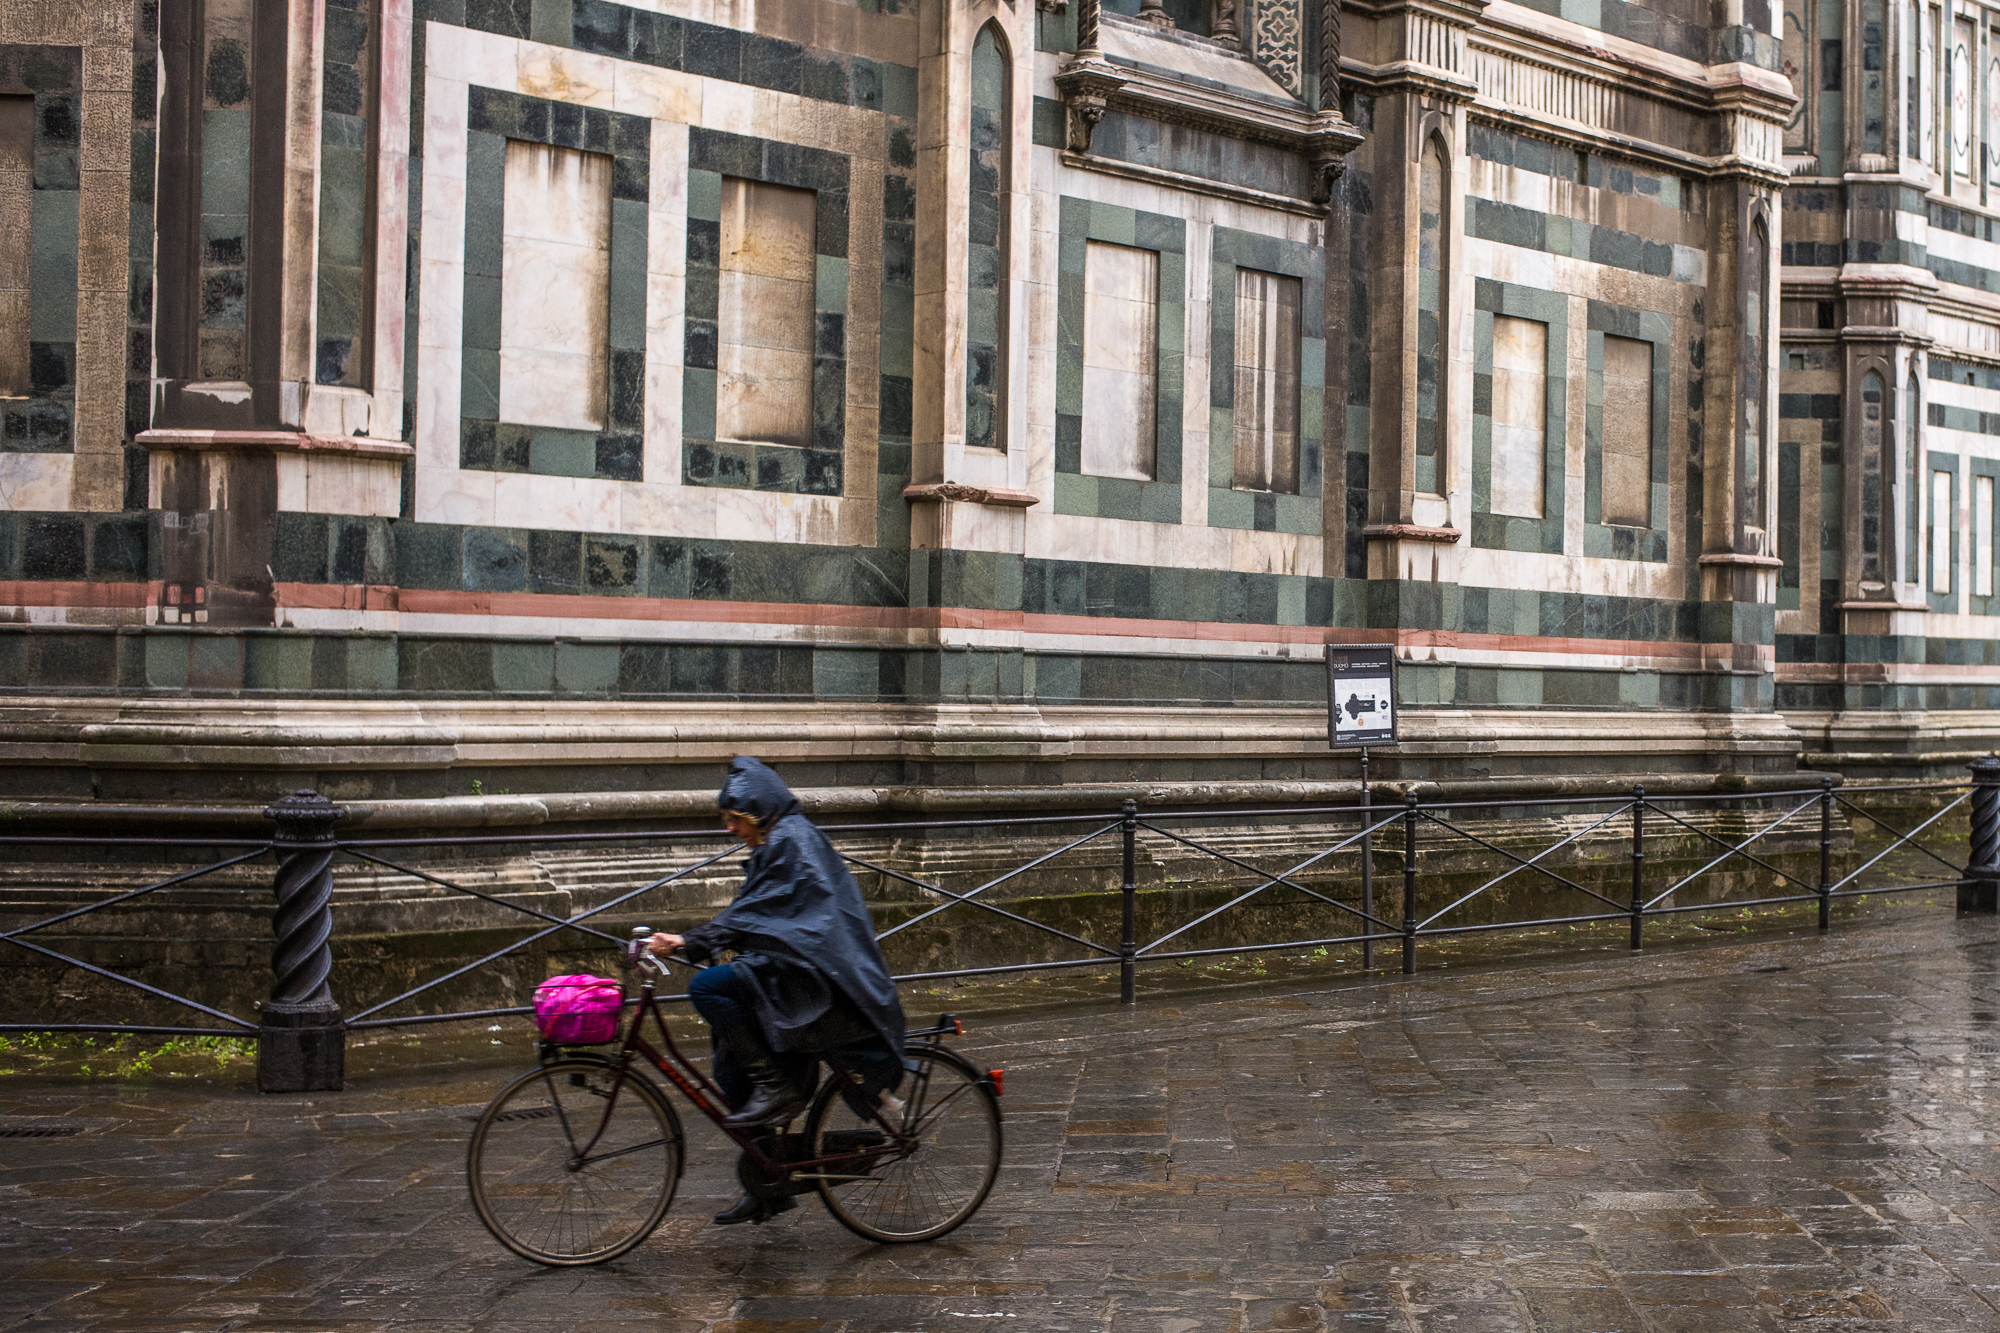 Bicycle riding past the Duomo